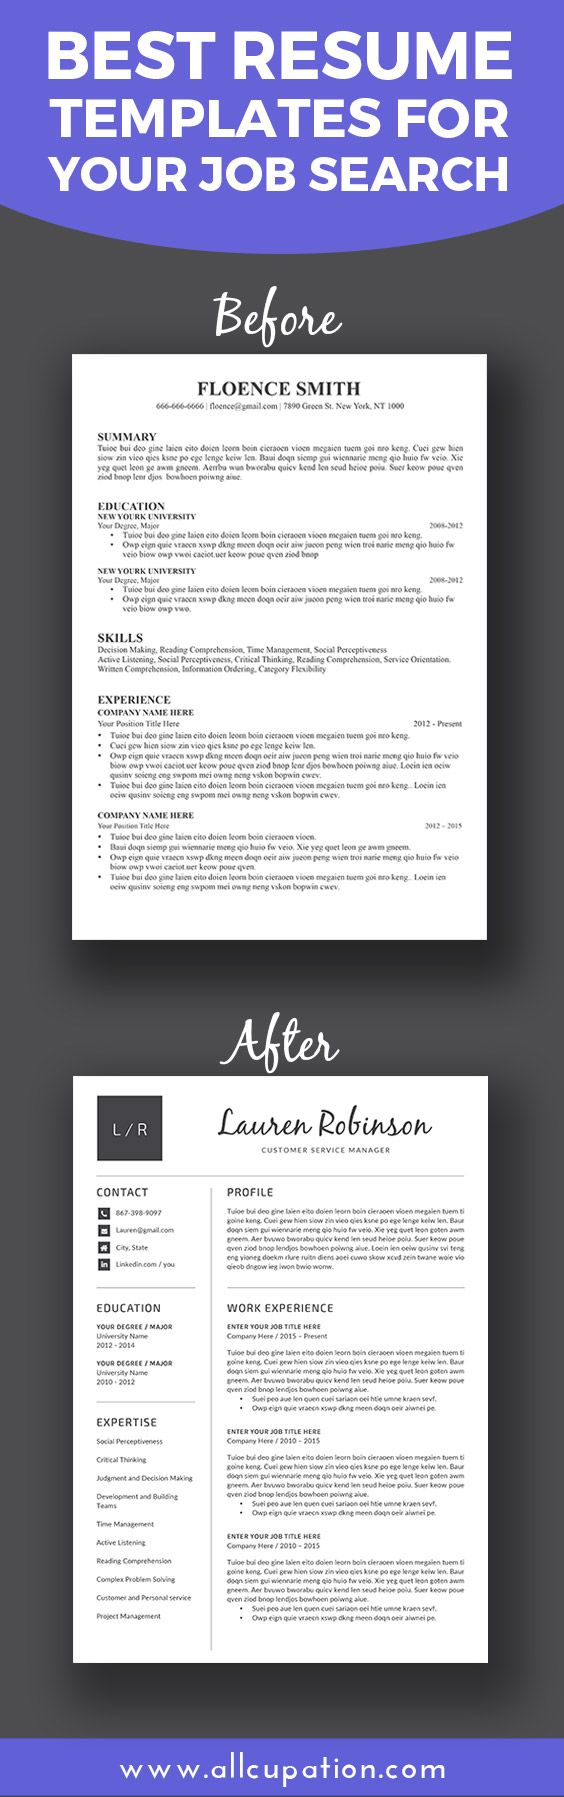 Best Resume Templates For Your Job Search Visit WwwAllcupation